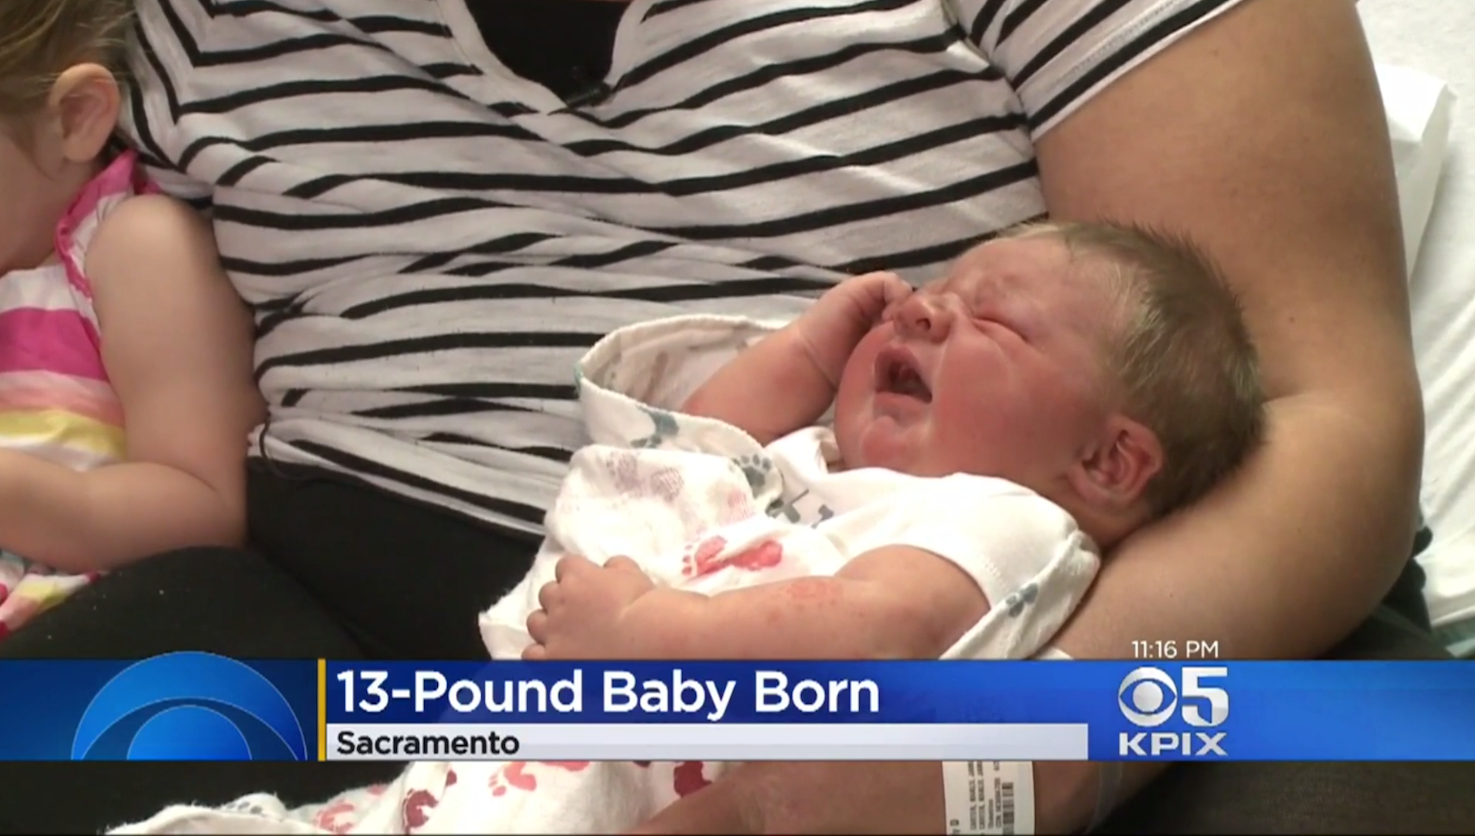 Mother gives birth to one of largest babies ever born in Northern Calif.